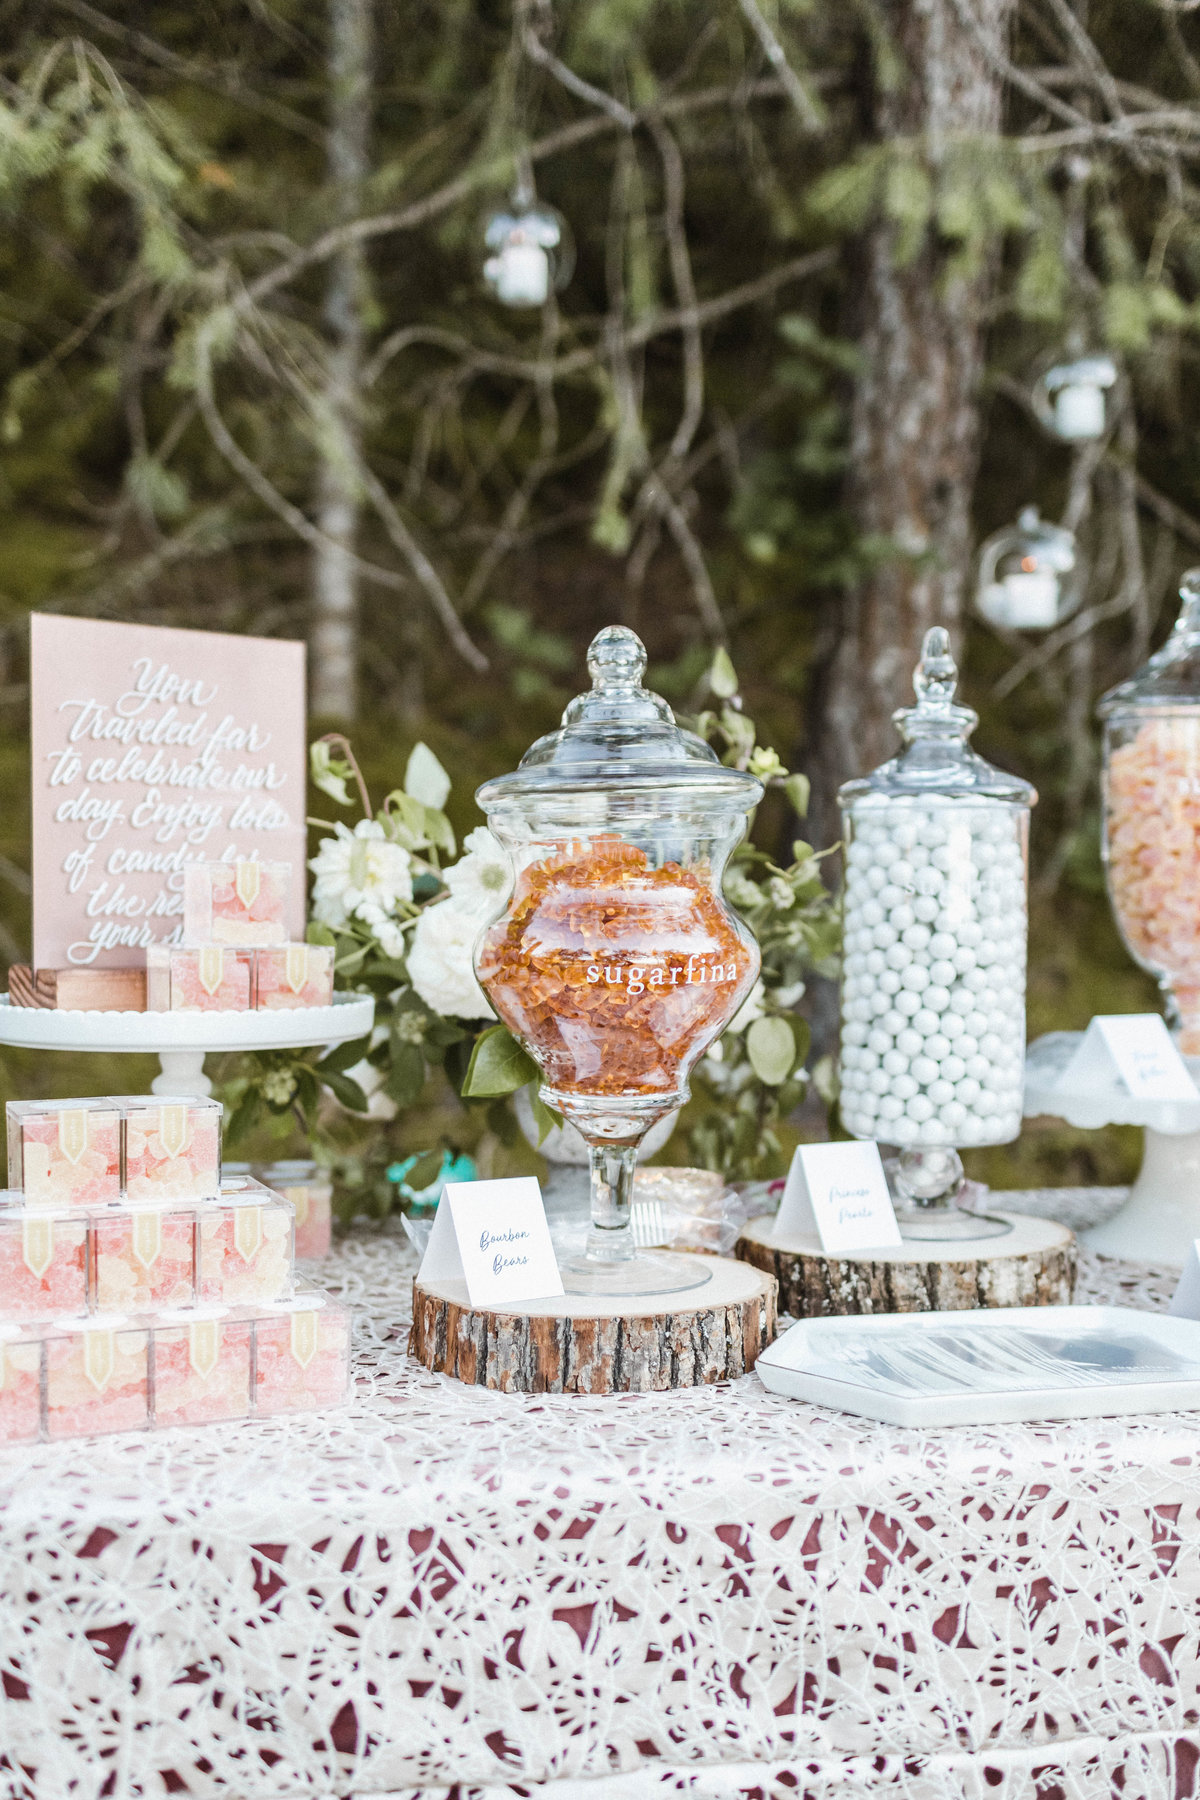 JB Wedding - CANDY BAR - sarah-falugo-julianne-hough-brooks-laich-wedding-4352